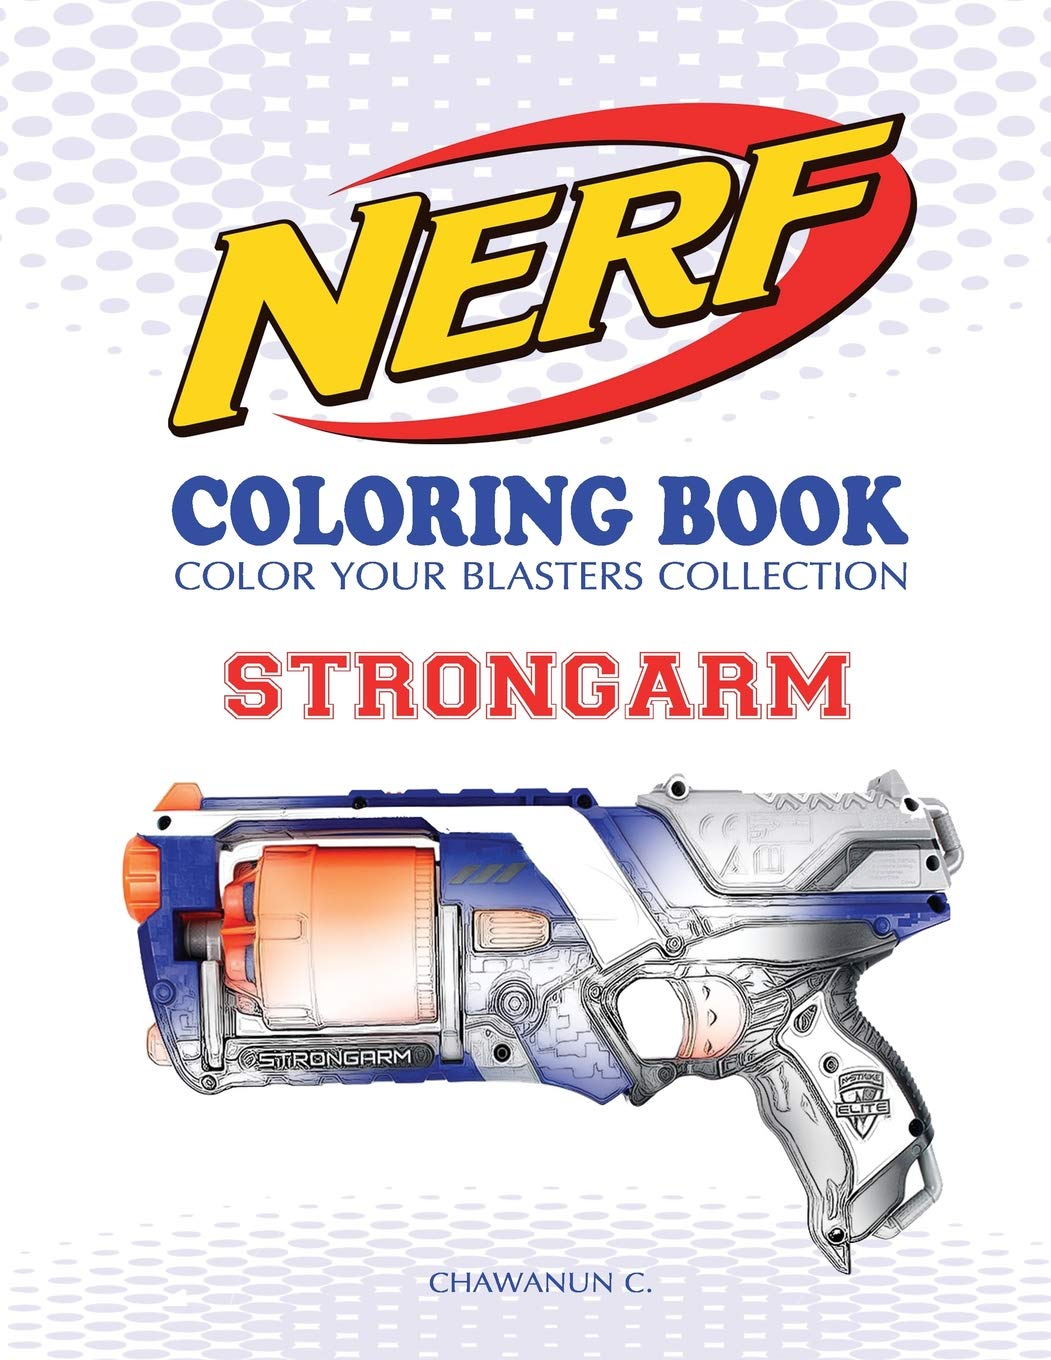 Nerf Coloring Book   Strongarm  Color Your Blasters Collection, N